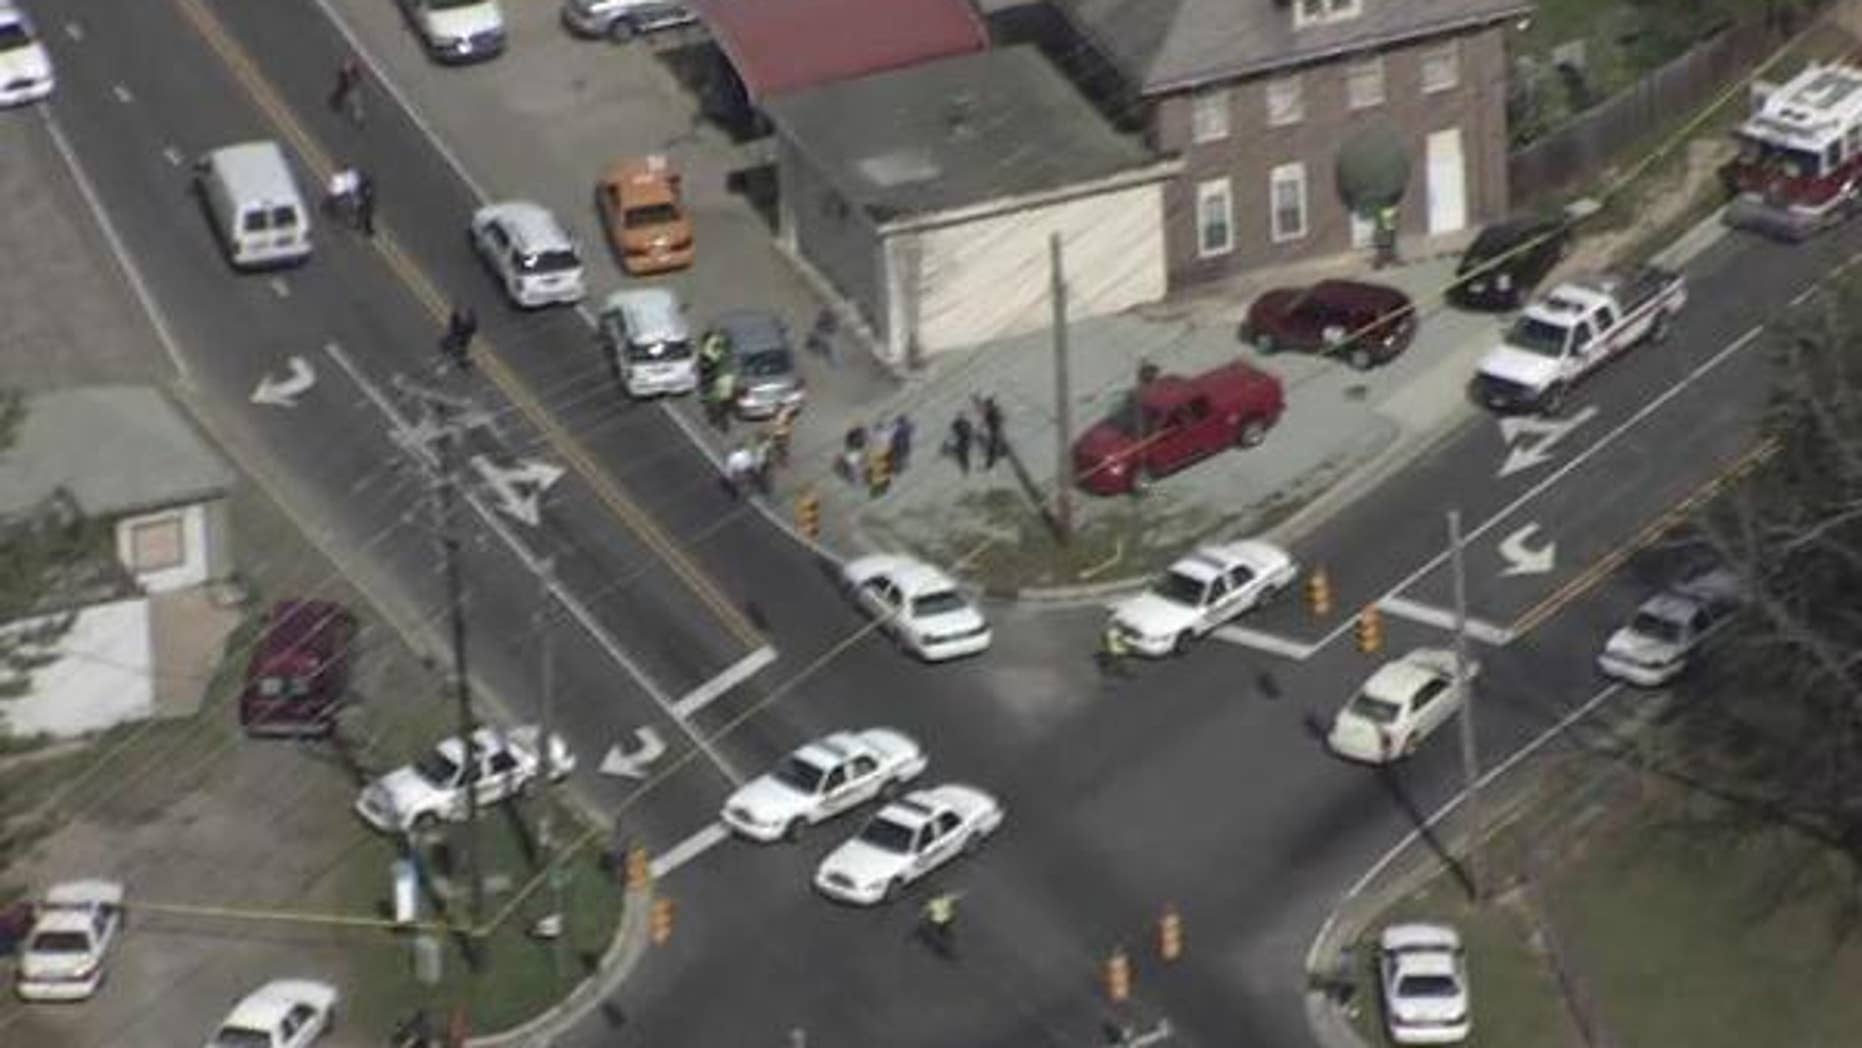 March 23, 2012: A gunman killed two people at a tire shop in Durham, N.C., before fleeing by car.